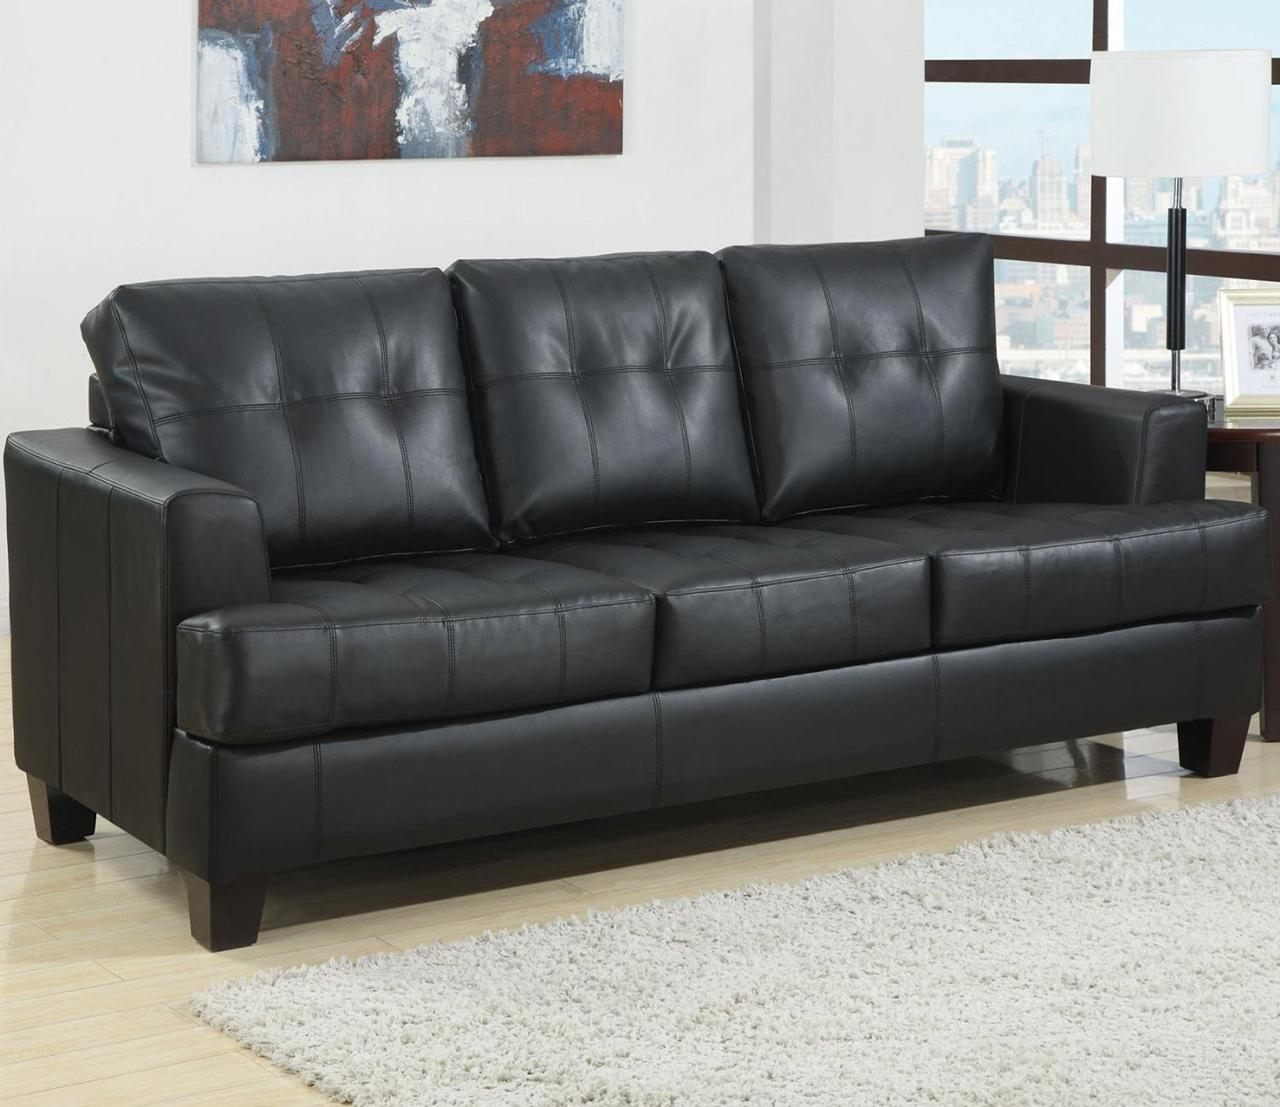 25 Best Sleeper Sofa Beds To Buy In 2017 regarding Black Leather Convertible Sofas